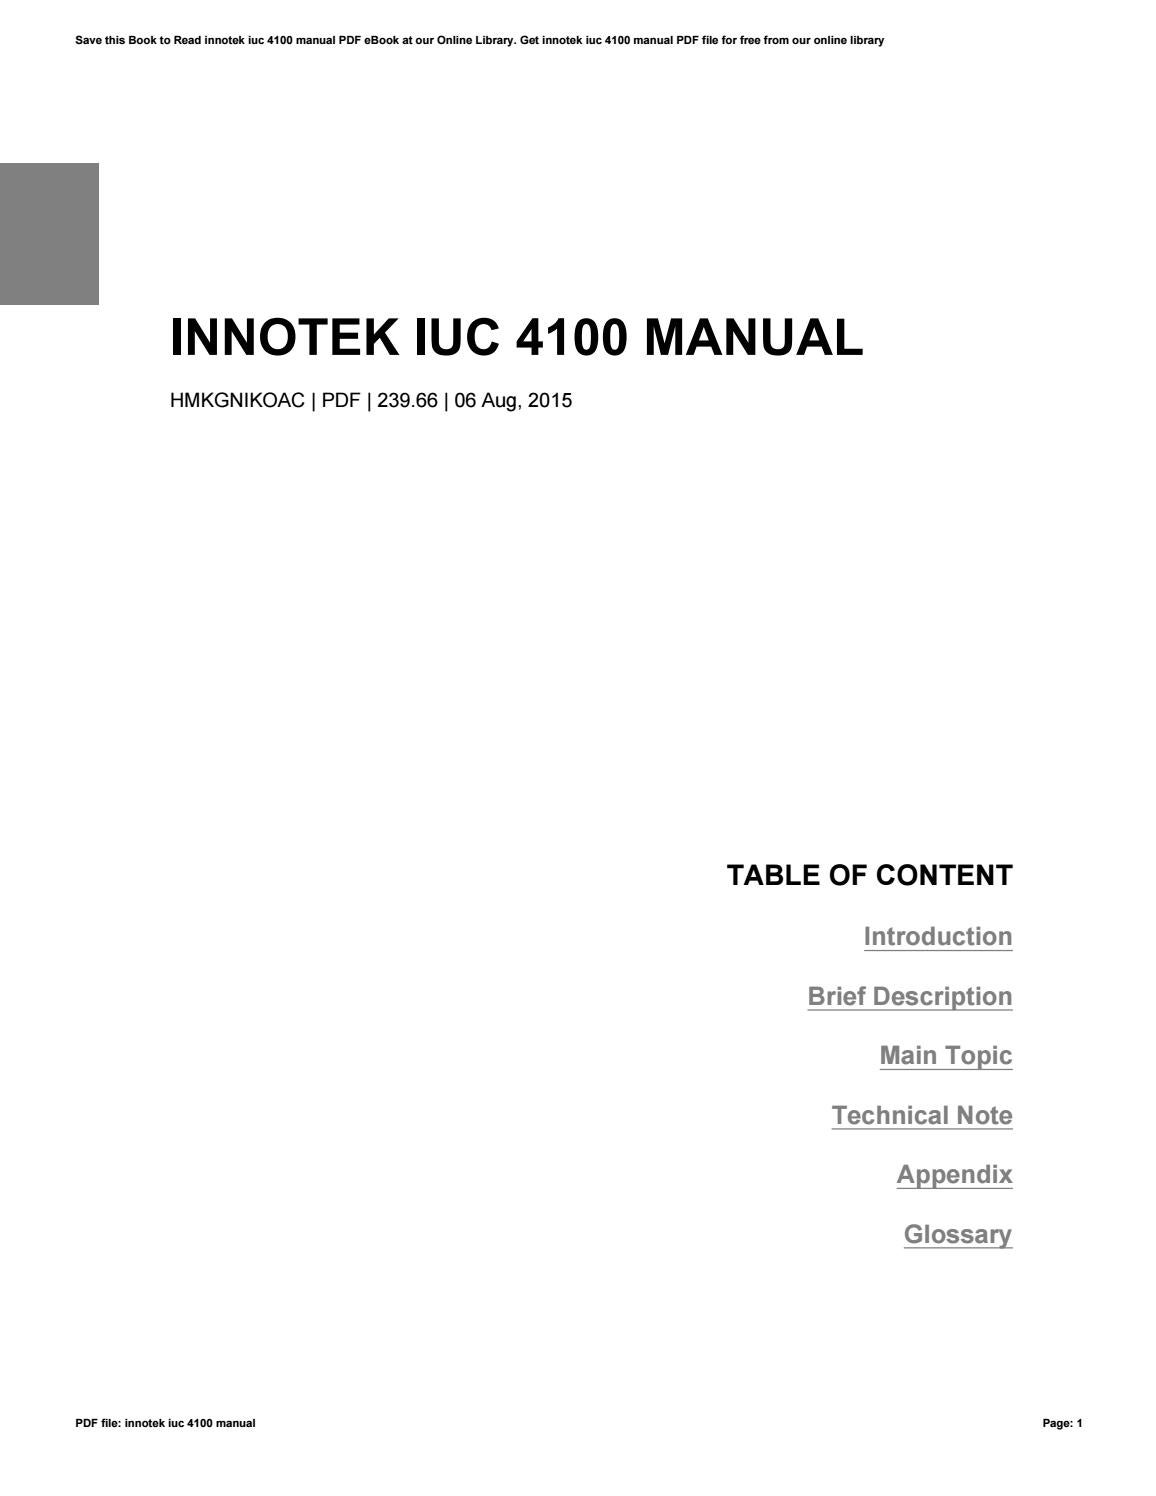 new products for novemberview all Array - innotek iuc 4100 manual by jeremy  issuu rh issuu ...